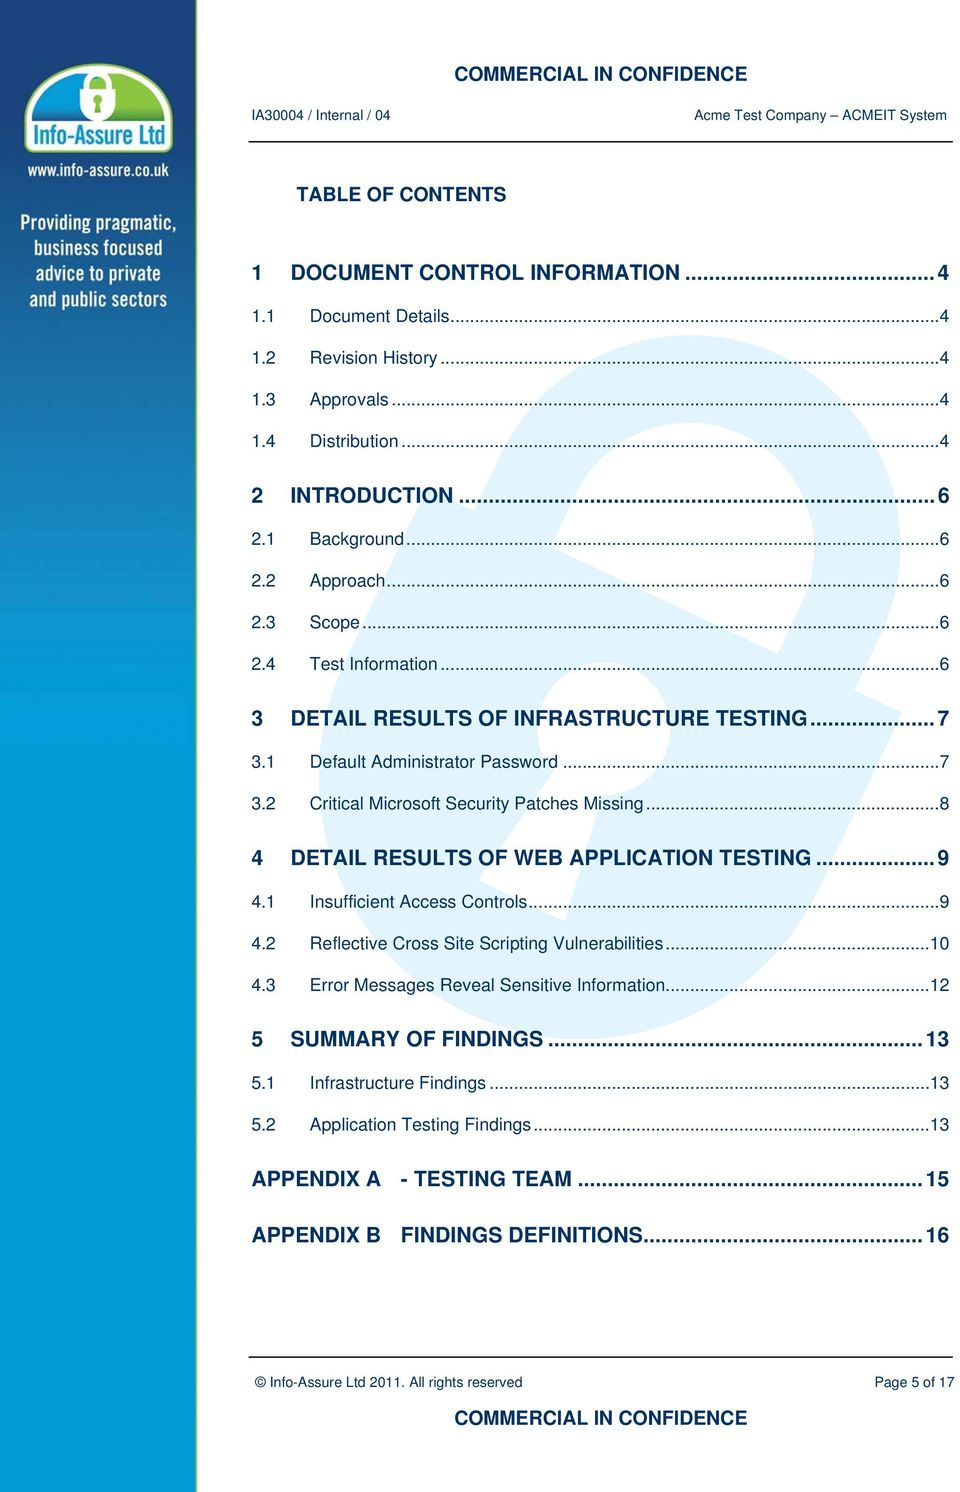 Penetration Test Report - PDF